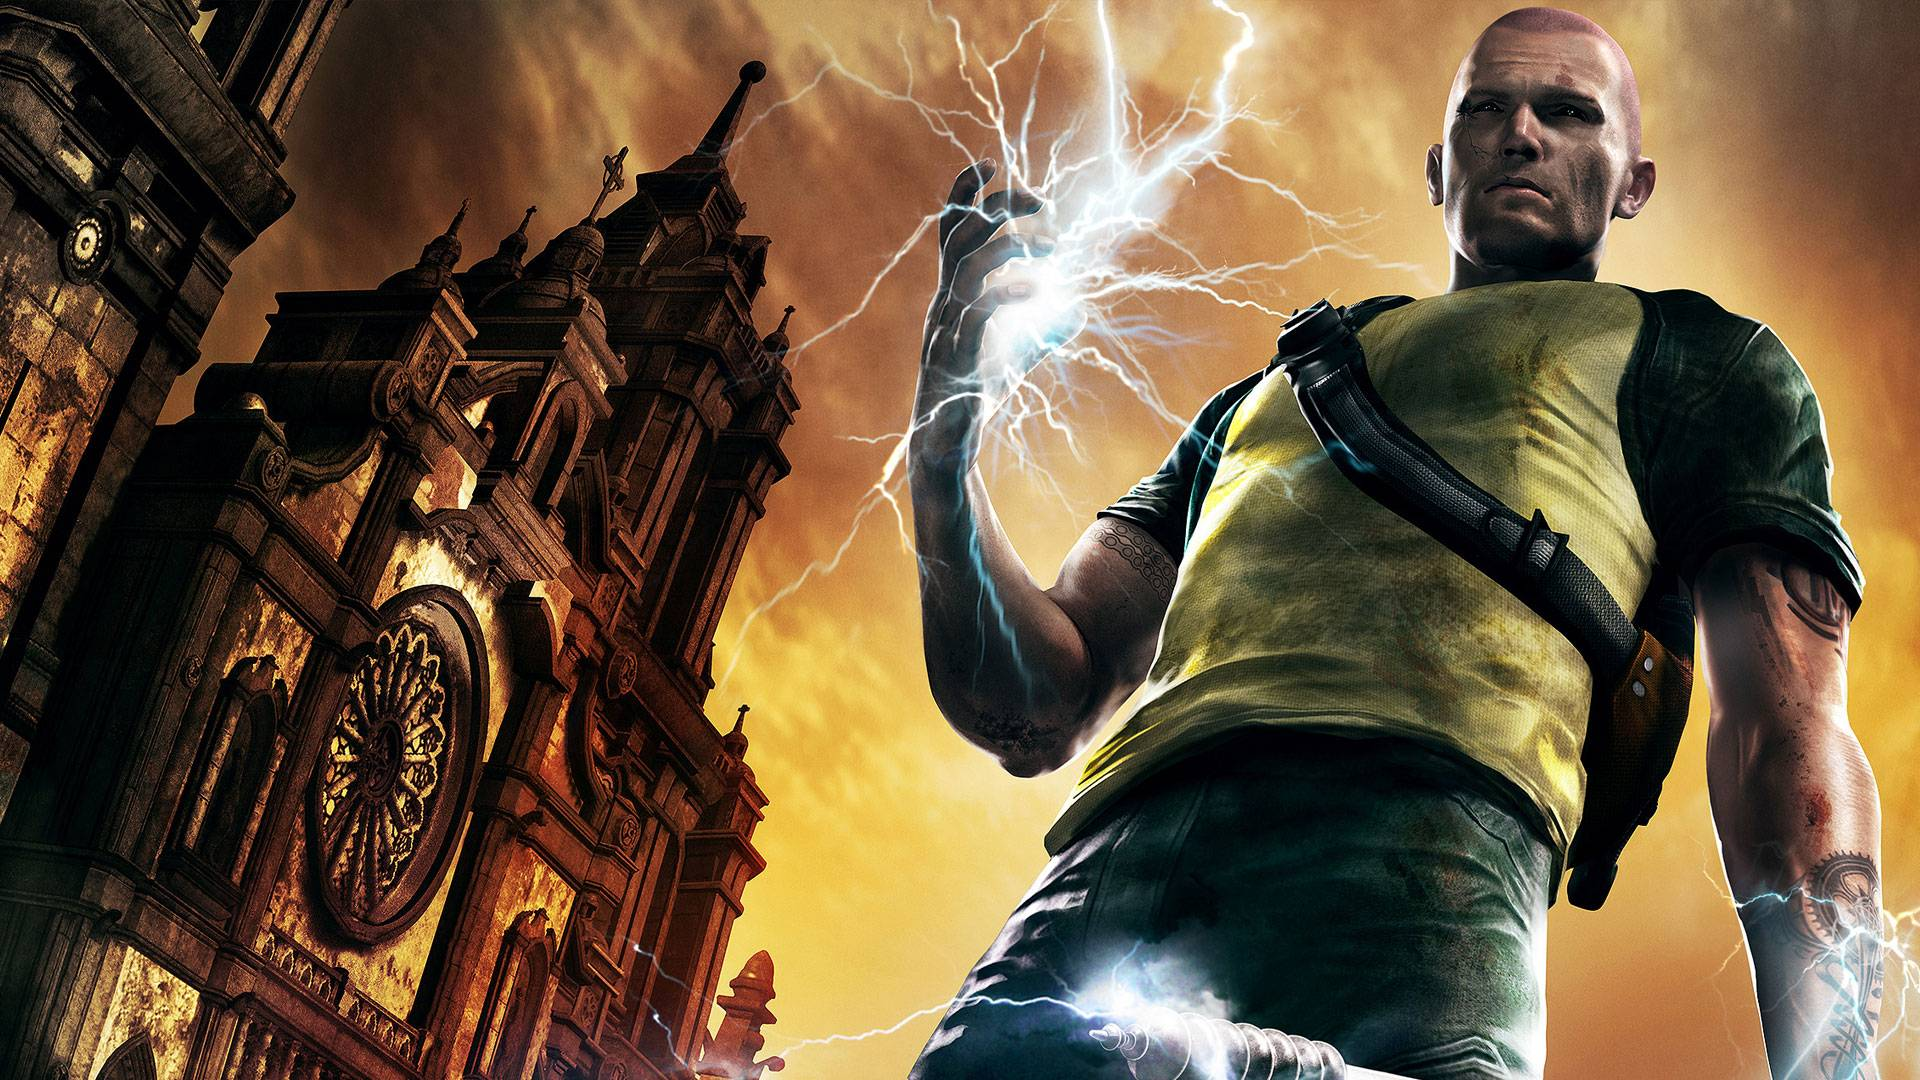 Infamous Wallpaper Hd inFamous 2 Wallpapers ...